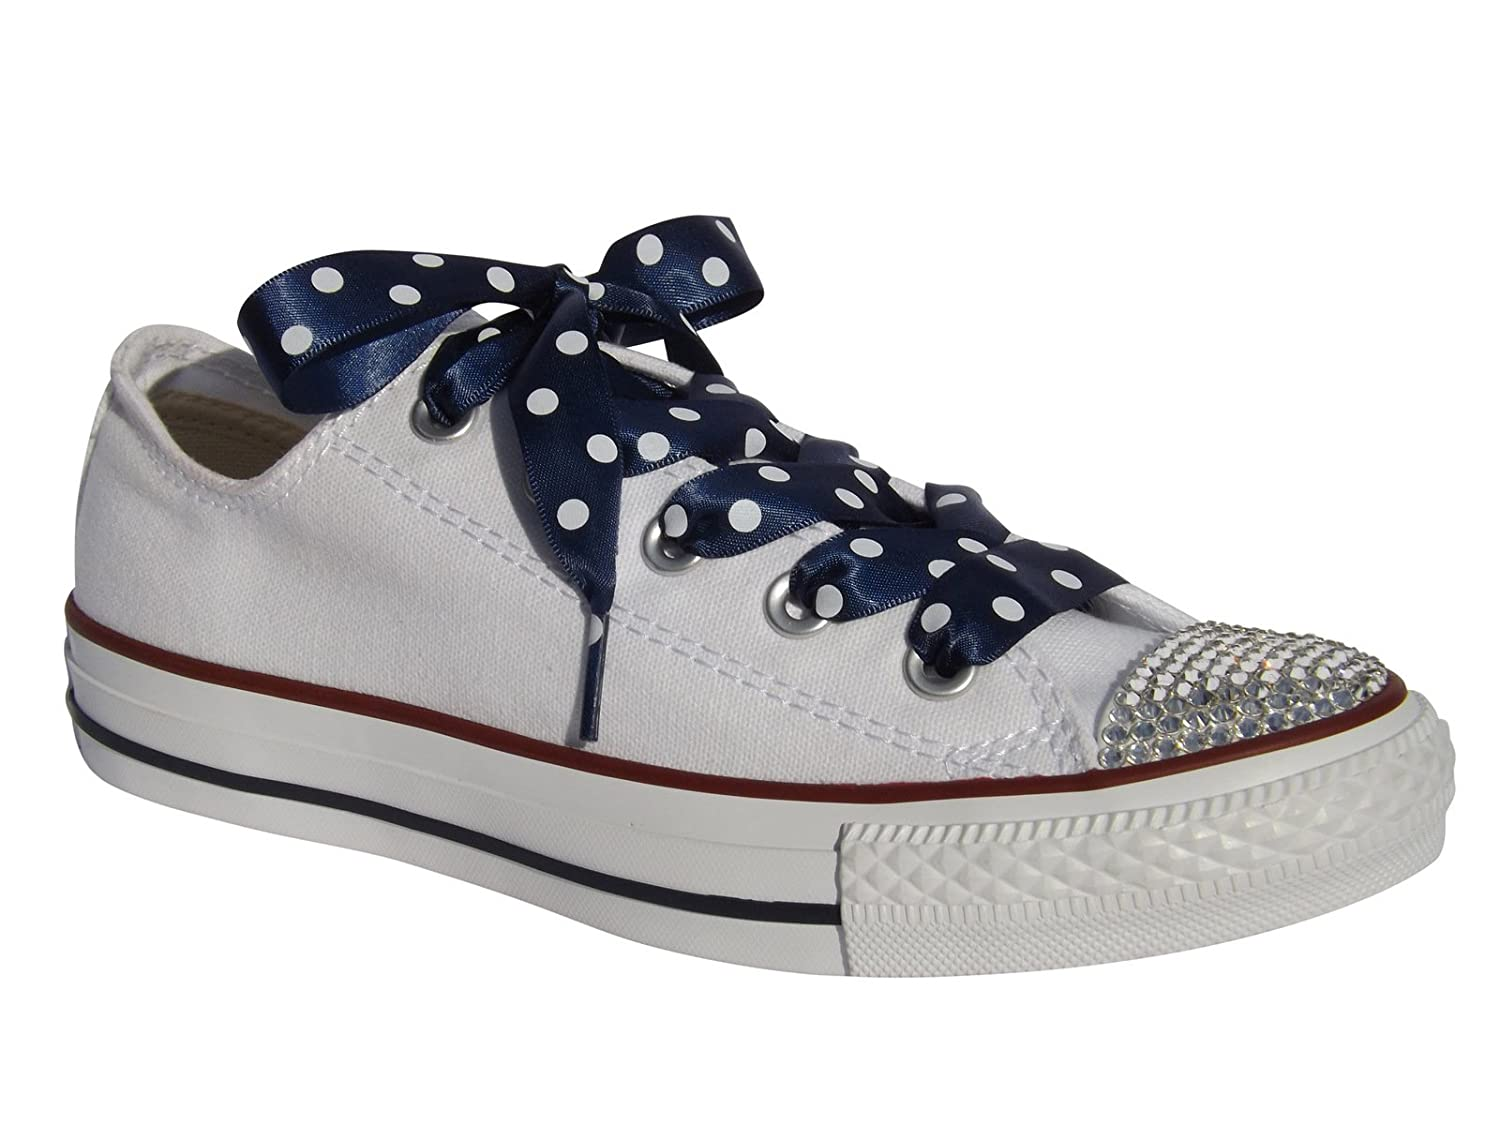 acba2000c5e3f6 Amazon.com  Navy Polka Flat Satin Ribbon Shoelaces